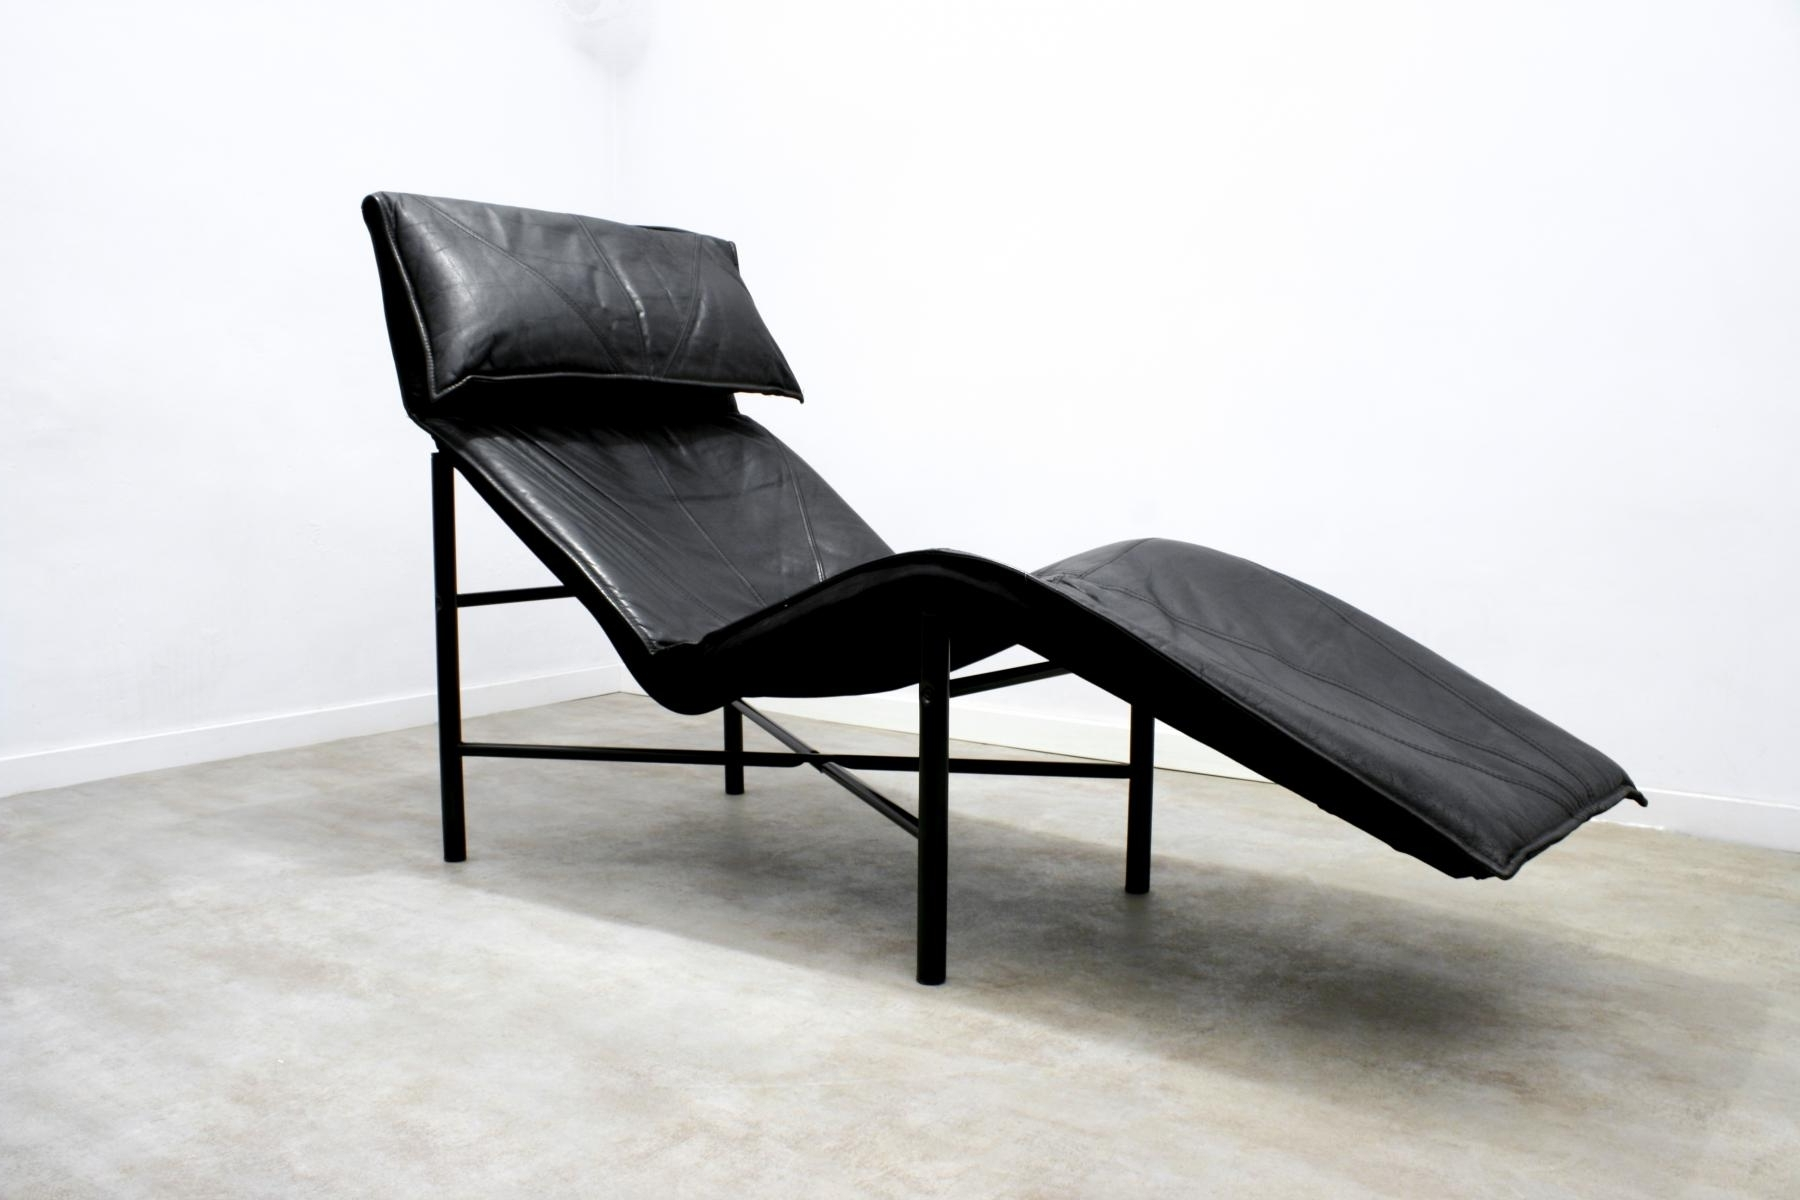 Ikea Chaise Longues With Widely Used Black Leather Skye Chaise Longuetord Björklund For Ikea, 1980S (View 6 of 15)